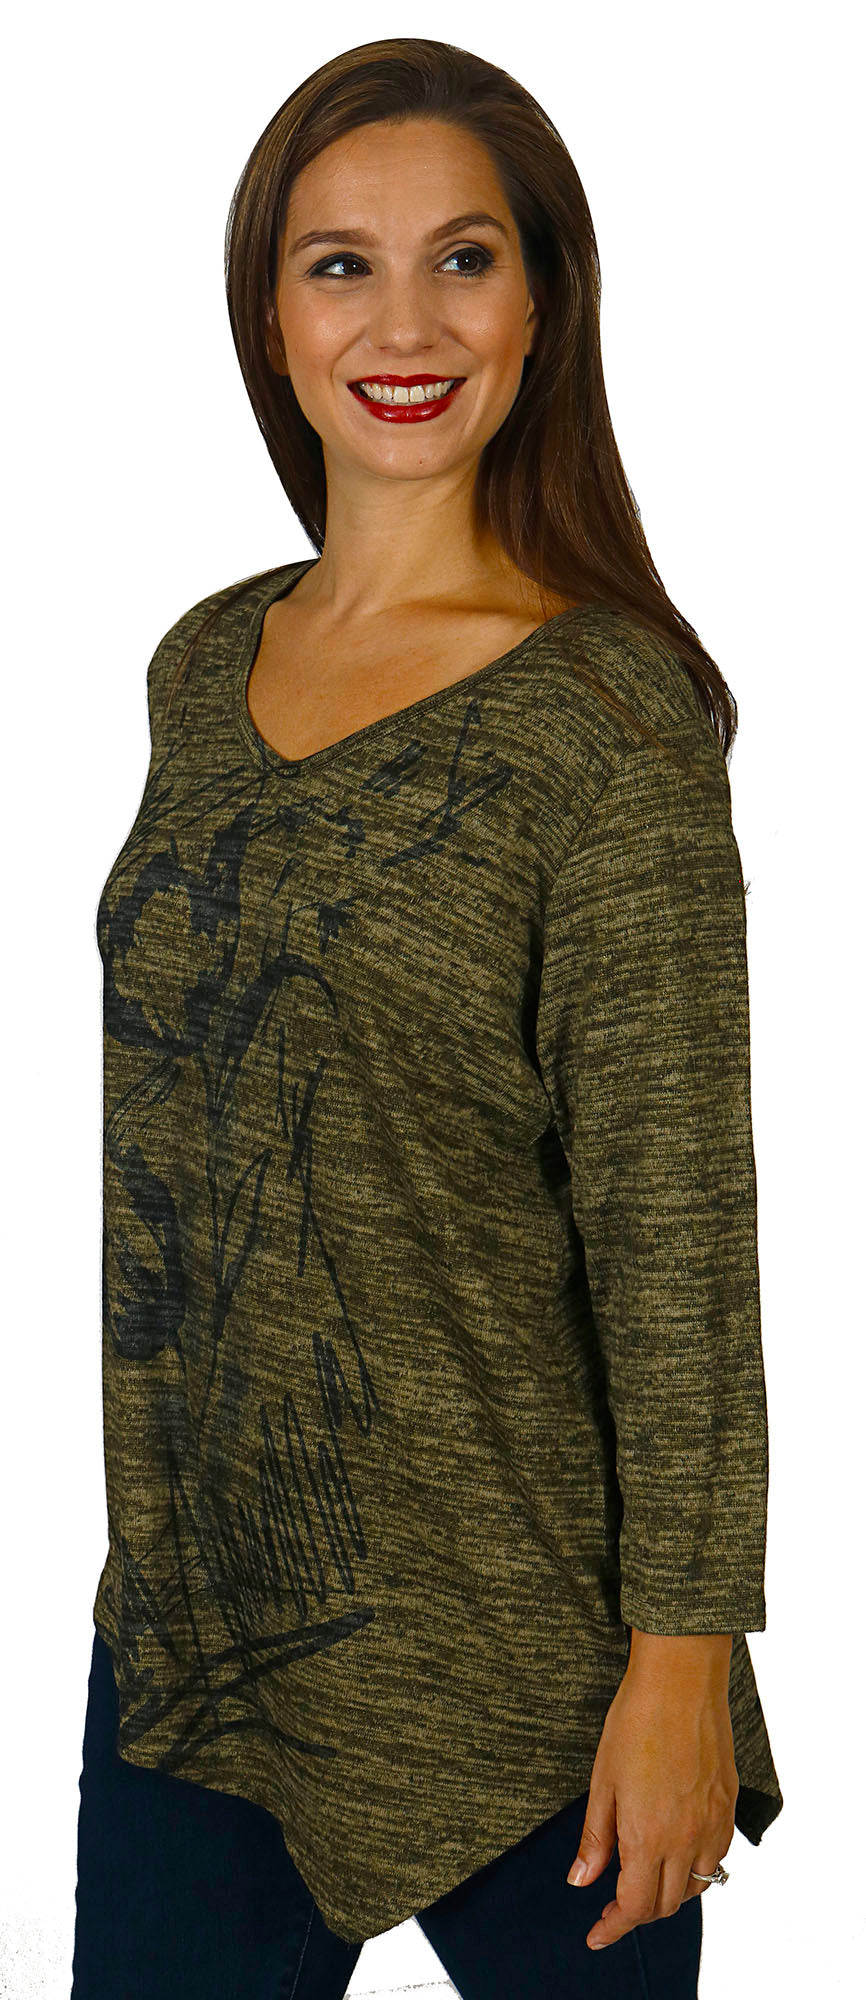 Impulse California Women's Tulips Asymmetrical Sweater